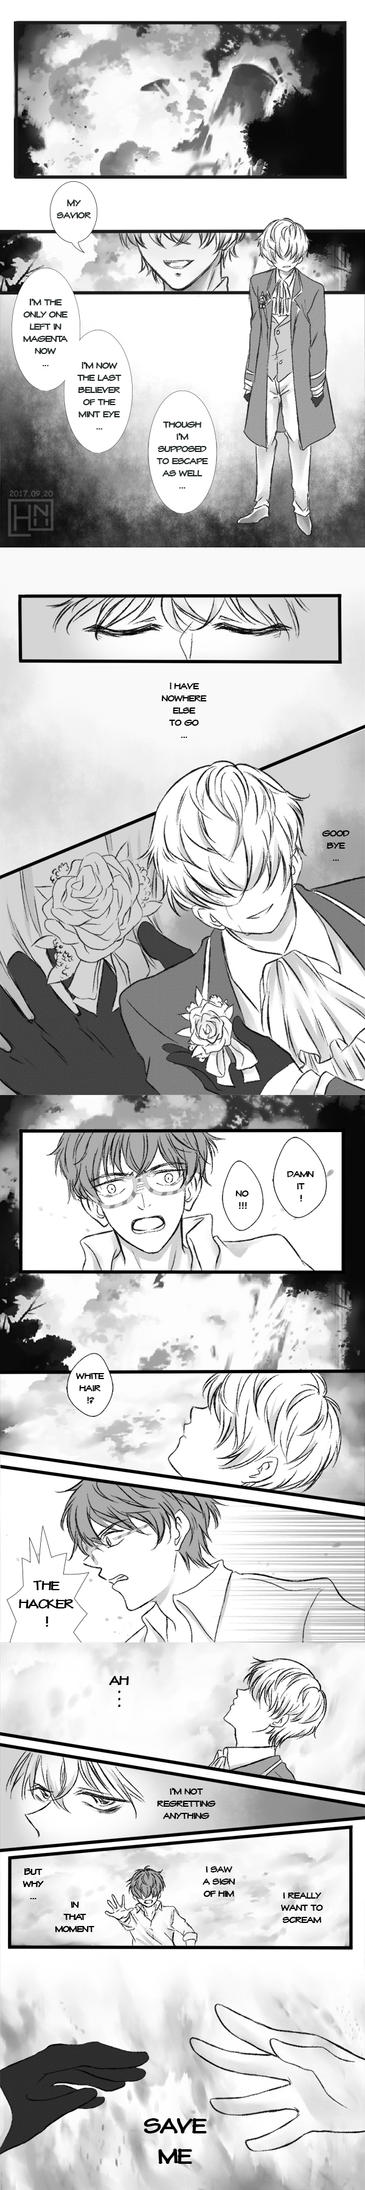 [Mystic Messenger] Please... Be saved... by Hini-Parlous